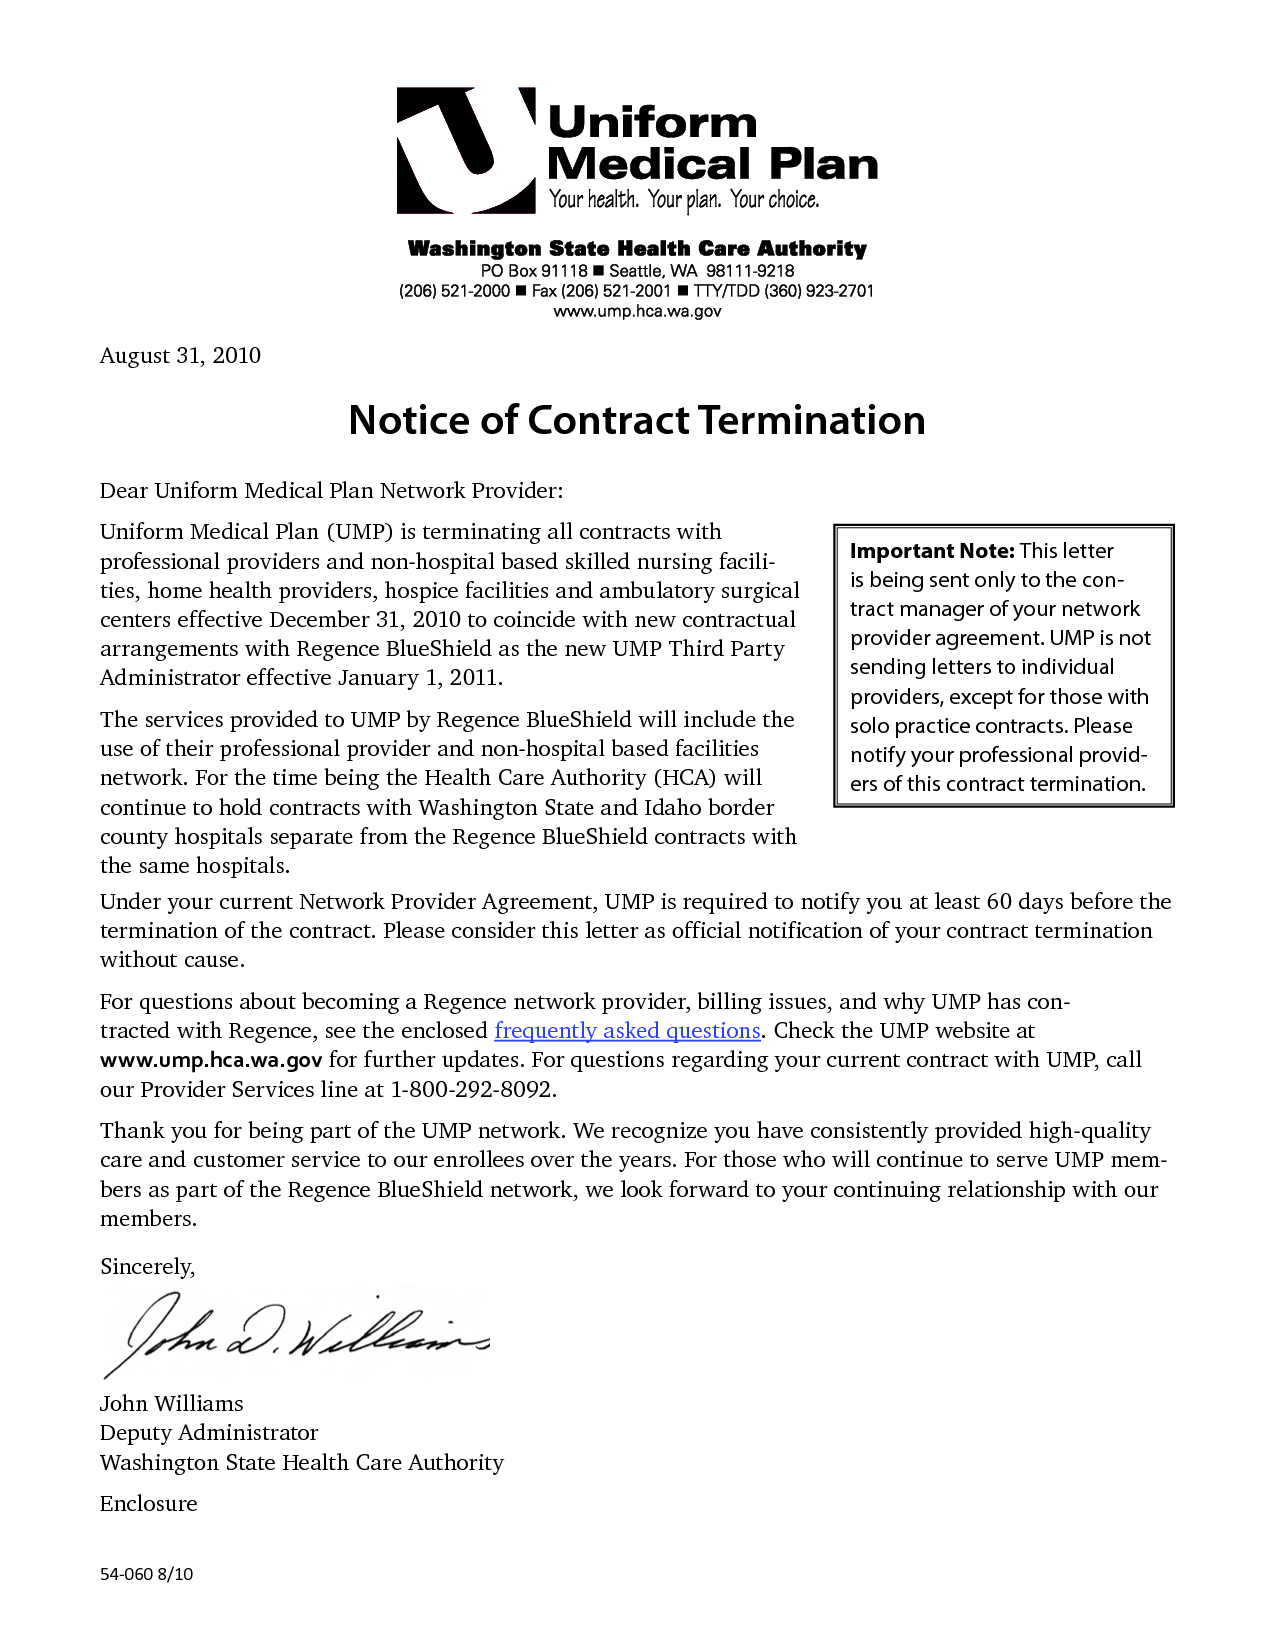 termination of contract agreement letter template 20 luxury termination service agreement letter sample